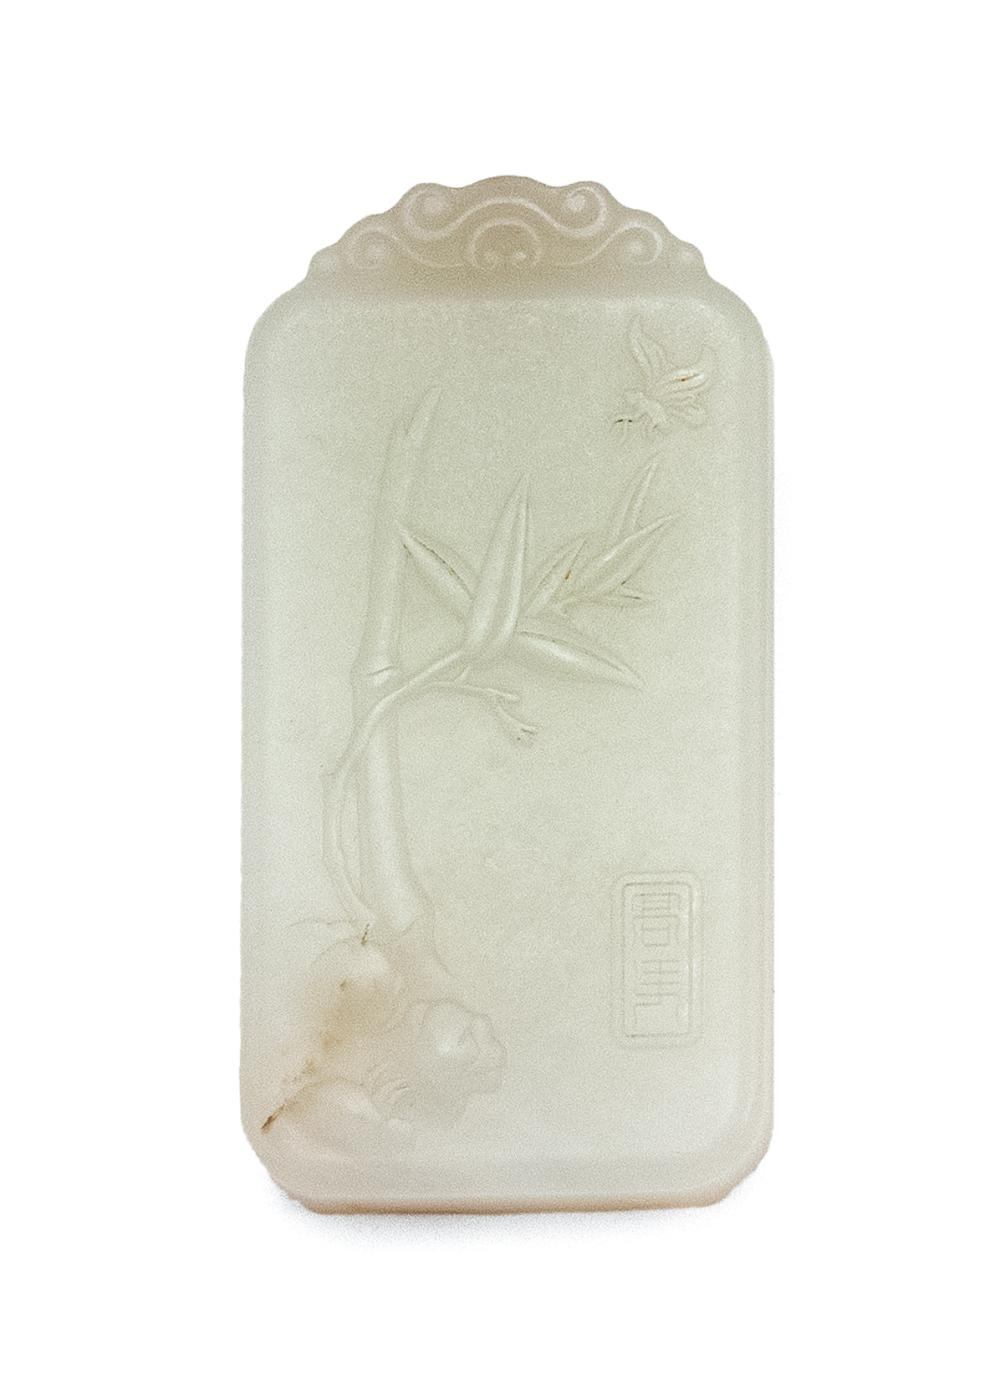 "CHINESE WHITE JADE PLAQUE Rectangular, with bamboo and butterfly carving on obverse and a landscape cartouche on reverse. Length 2.5""."